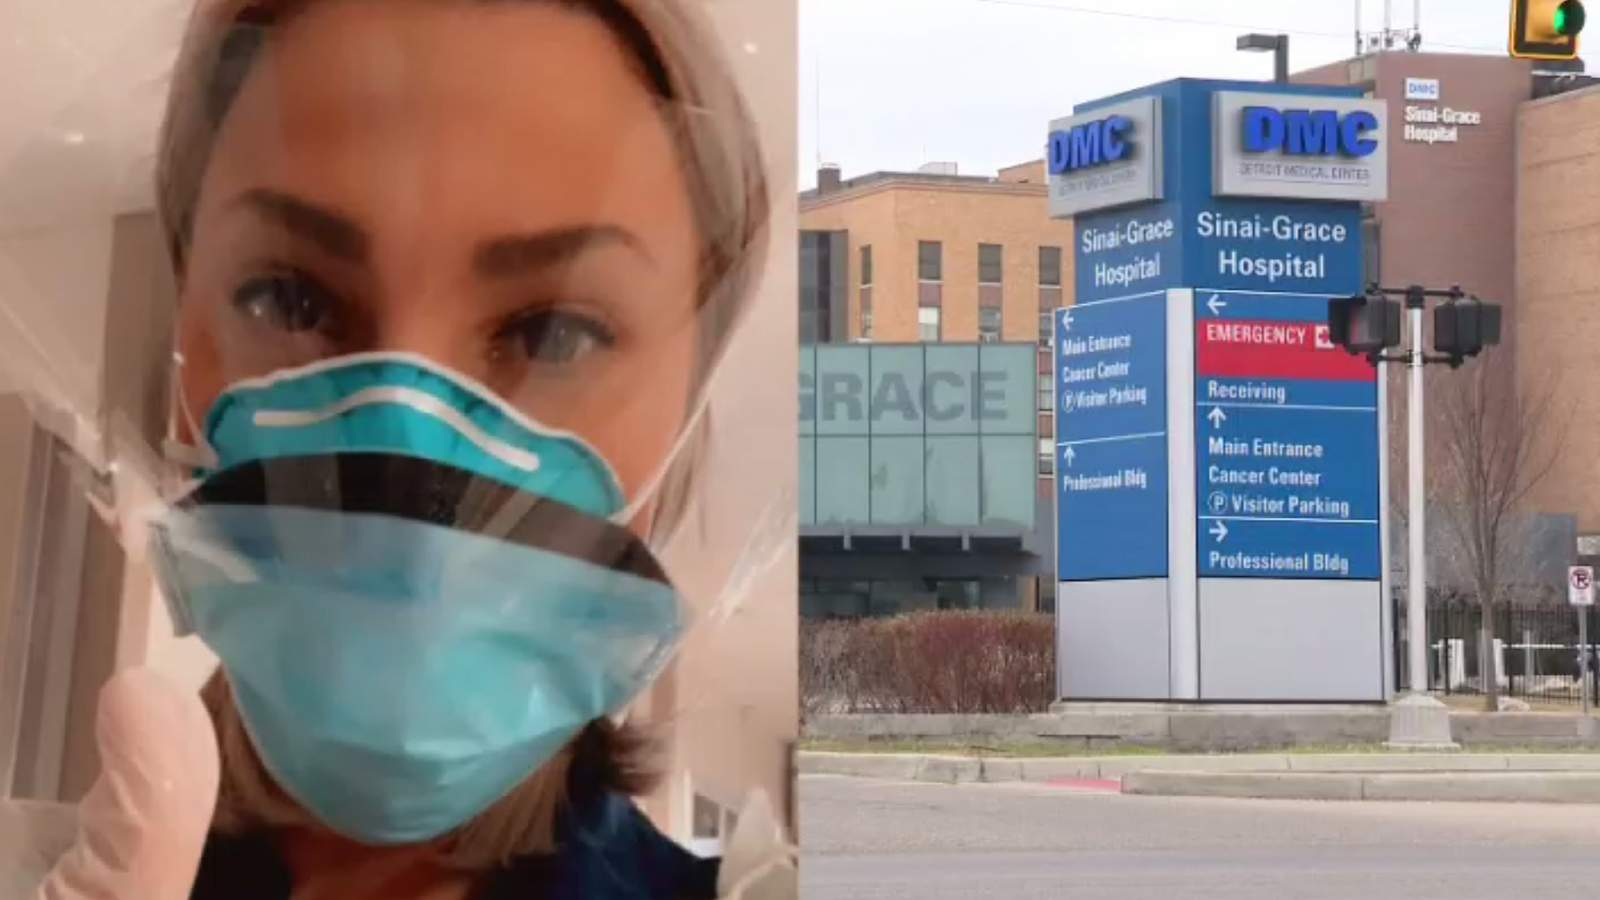 Nurse fired from Sinai-Grace Hospital for video showing COVID-19 precautions sues Detroit Medical Center